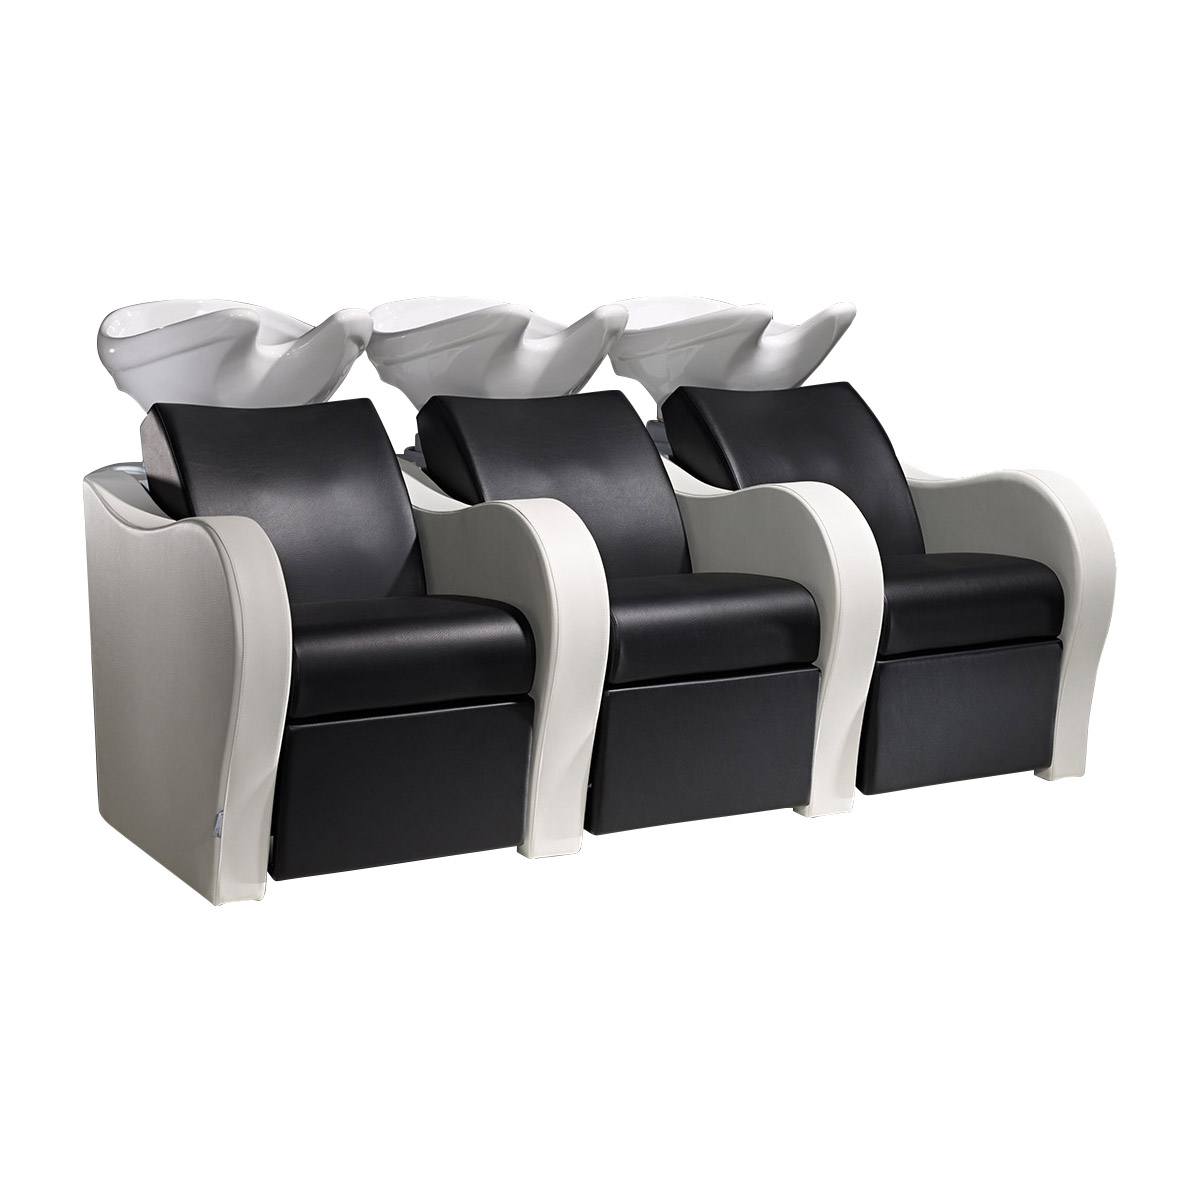 Luxury Sofa Salon Backwash Chairs by Salon Ambience  main product image